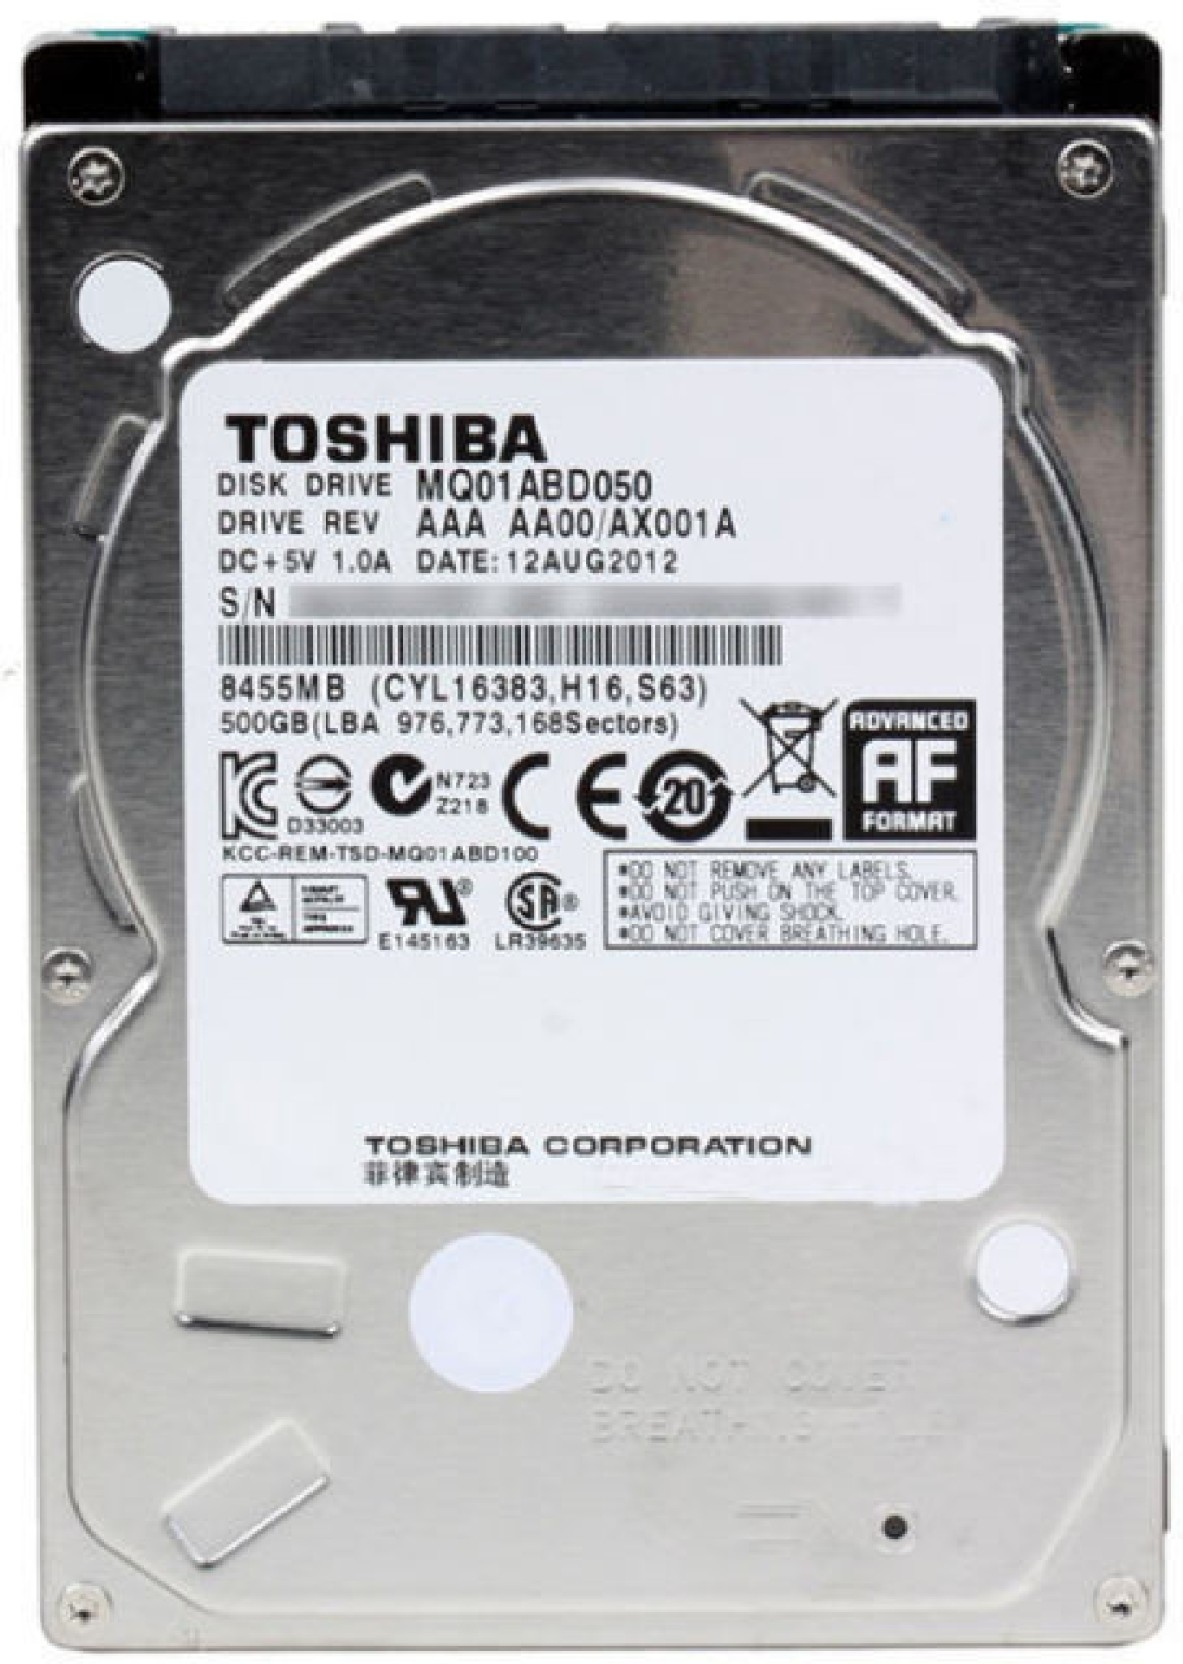 Toshiba Mq01abd050 500 Gb Laptop Internal Hard Disk Drive Harddisk 35 Inch Sata 500gb Seagate Slim Add To Cart